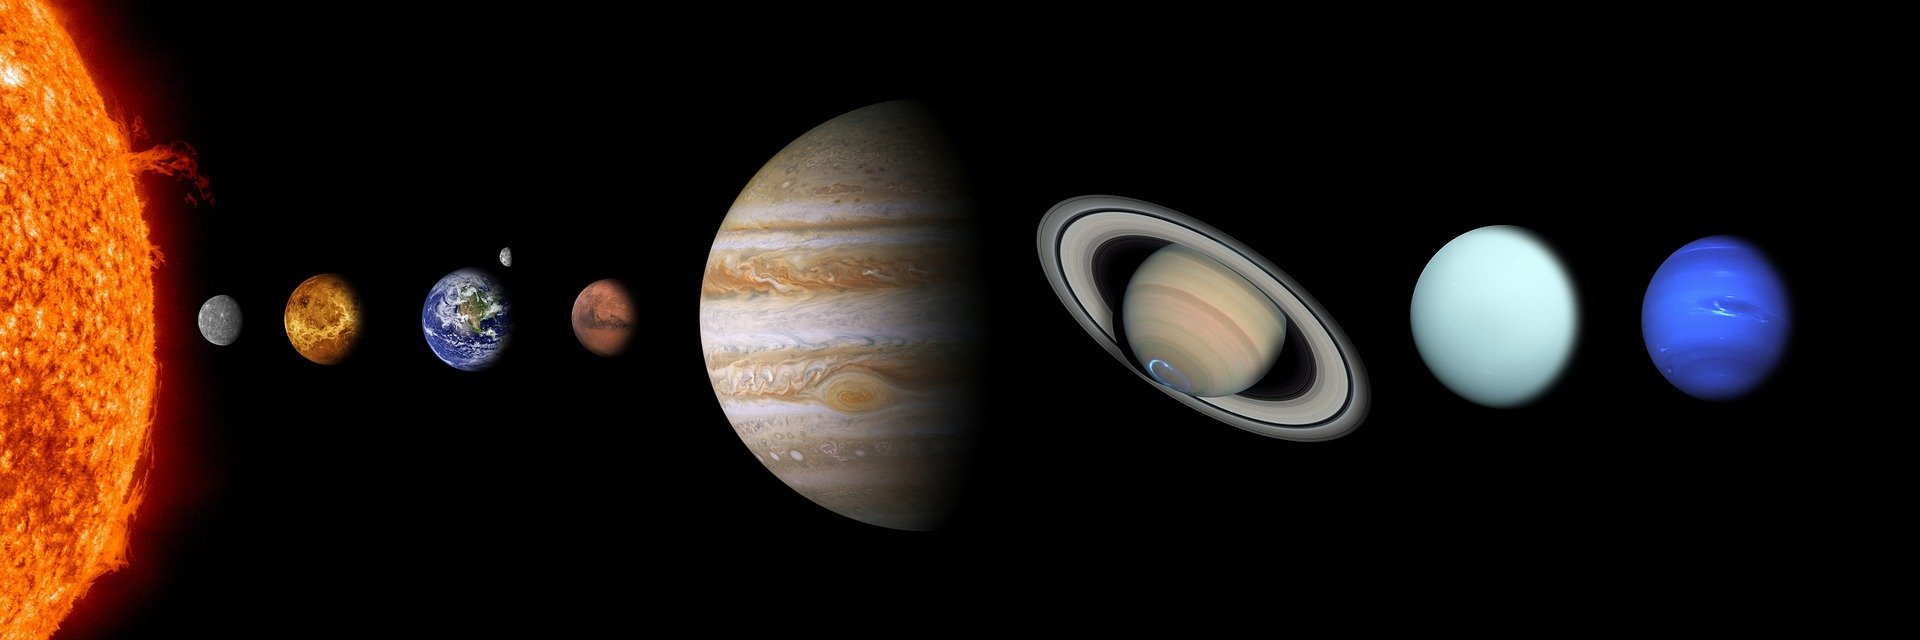 New theory to explain why planets in our solar system have different compositions